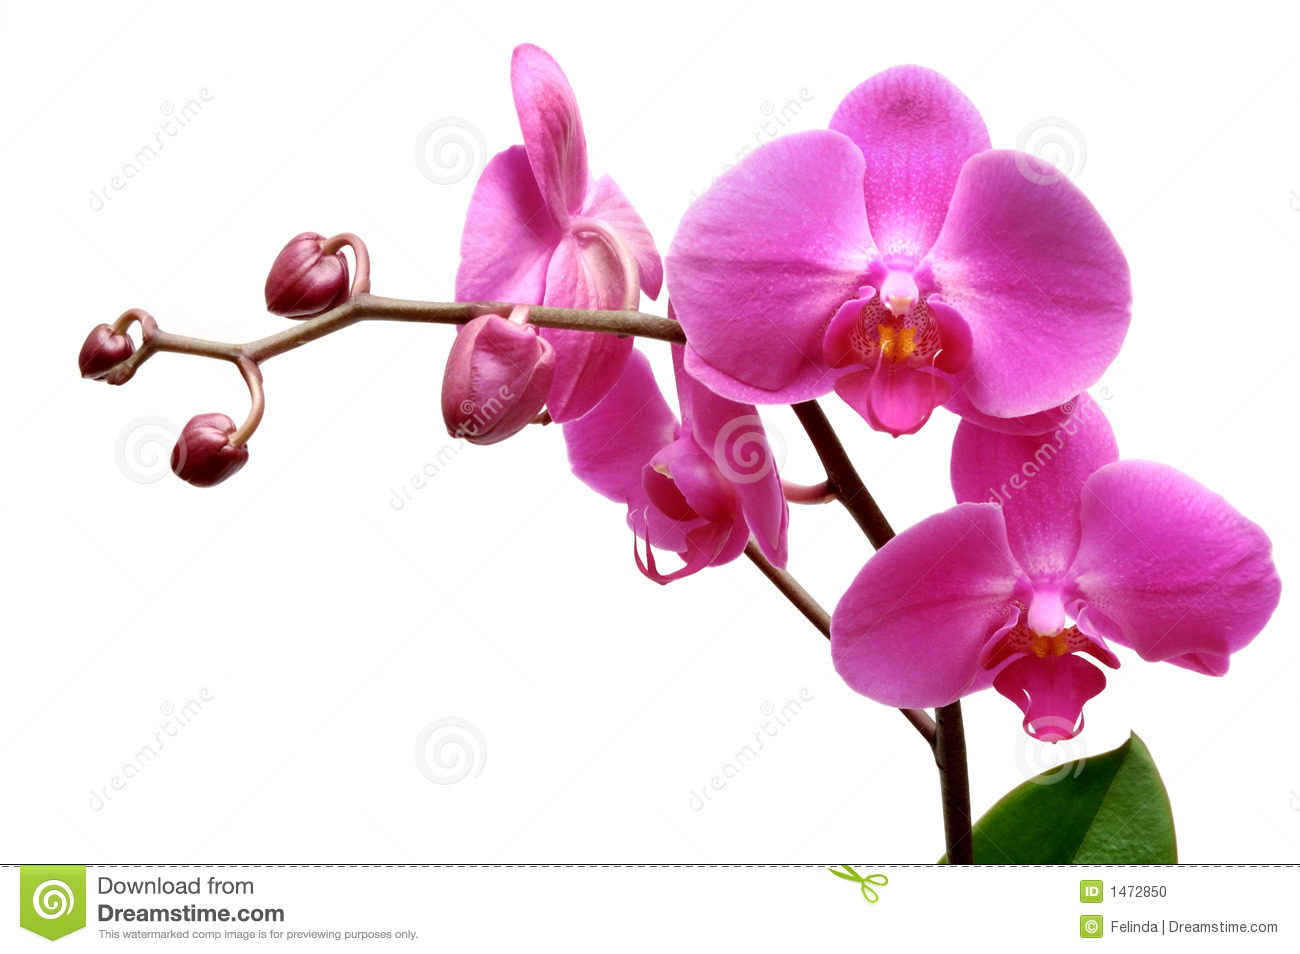 Blossoming orchid phalaenopsis isolated on white background